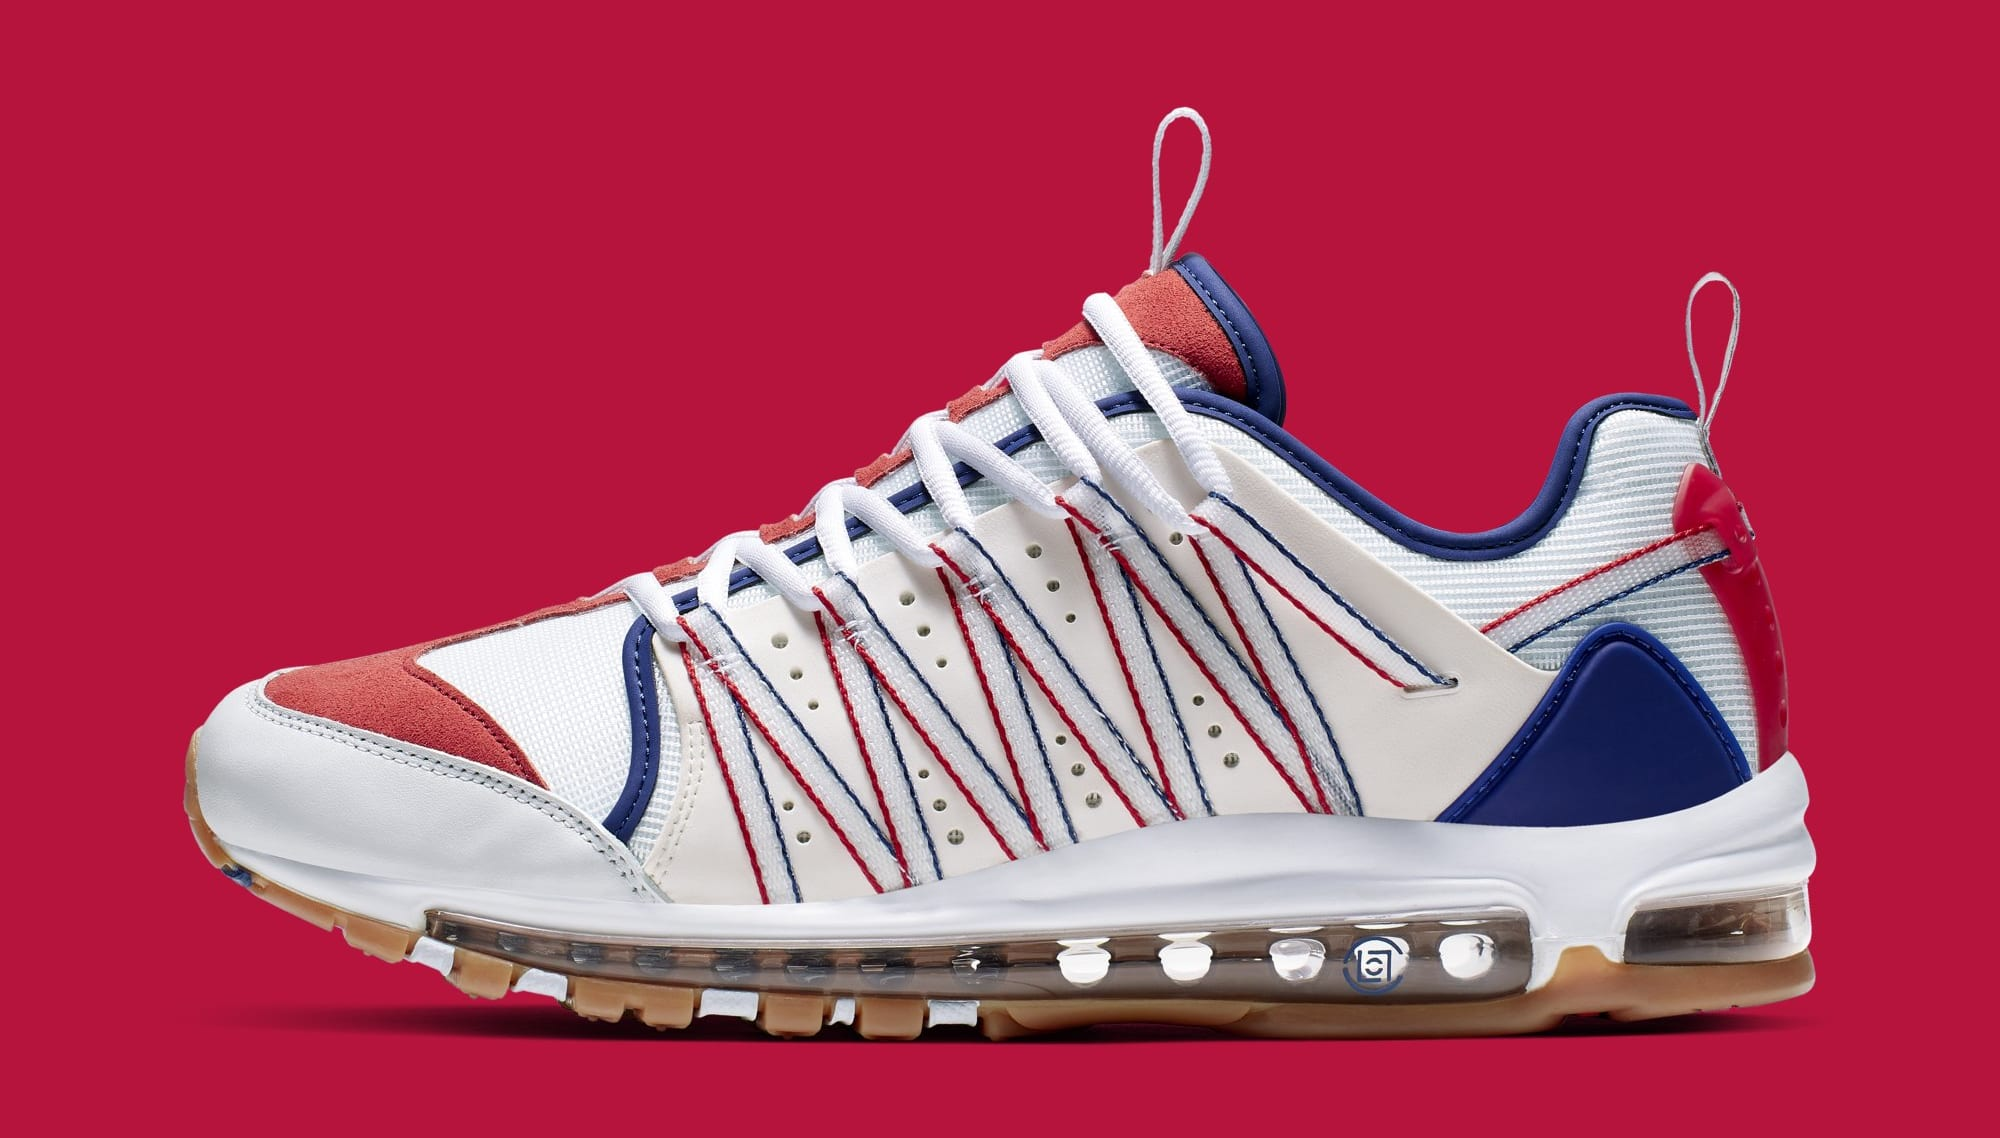 sale retailer b47e4 274c7 CLOT x Nike Air Max 97 Haven AO2134-101 (Lateral)